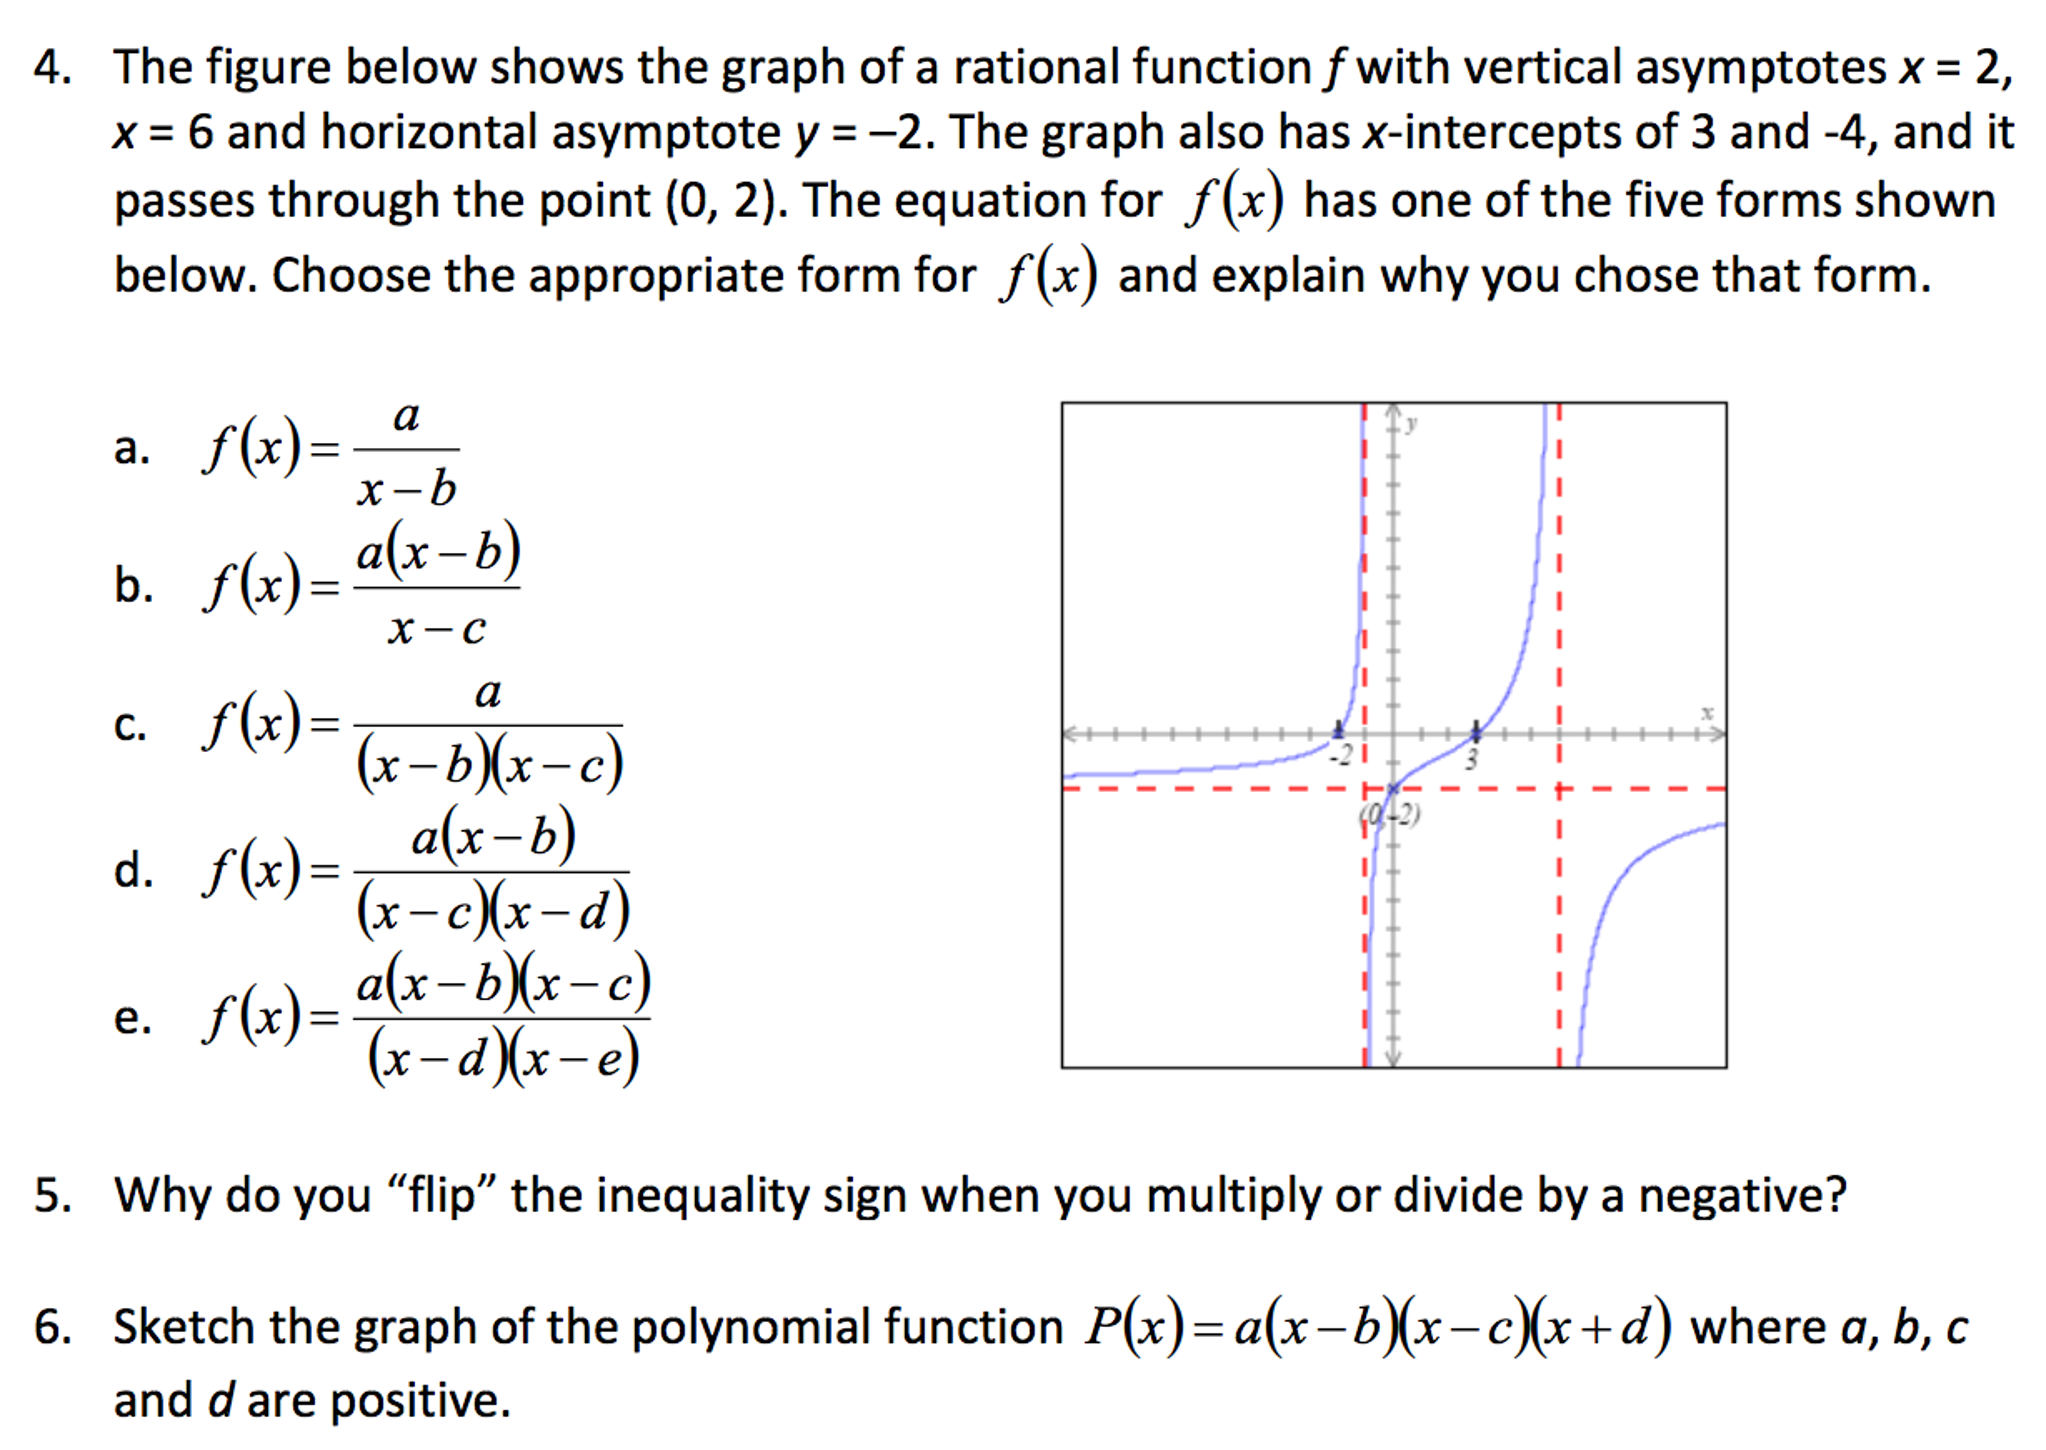 solved: the figure below shows the graph of a rational fun